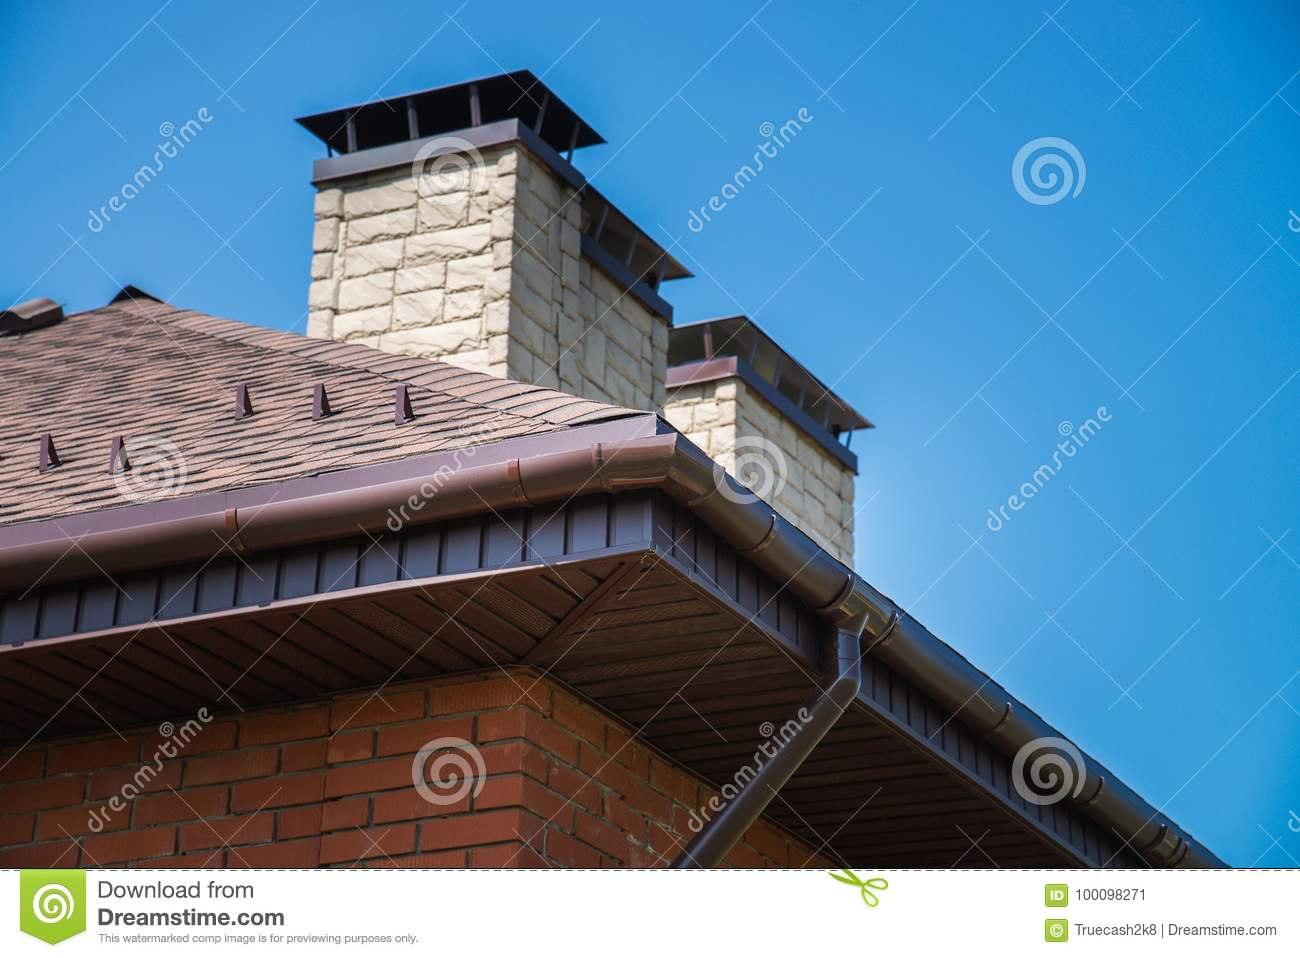 a new house with tiled roof chimney ventilation for heat control